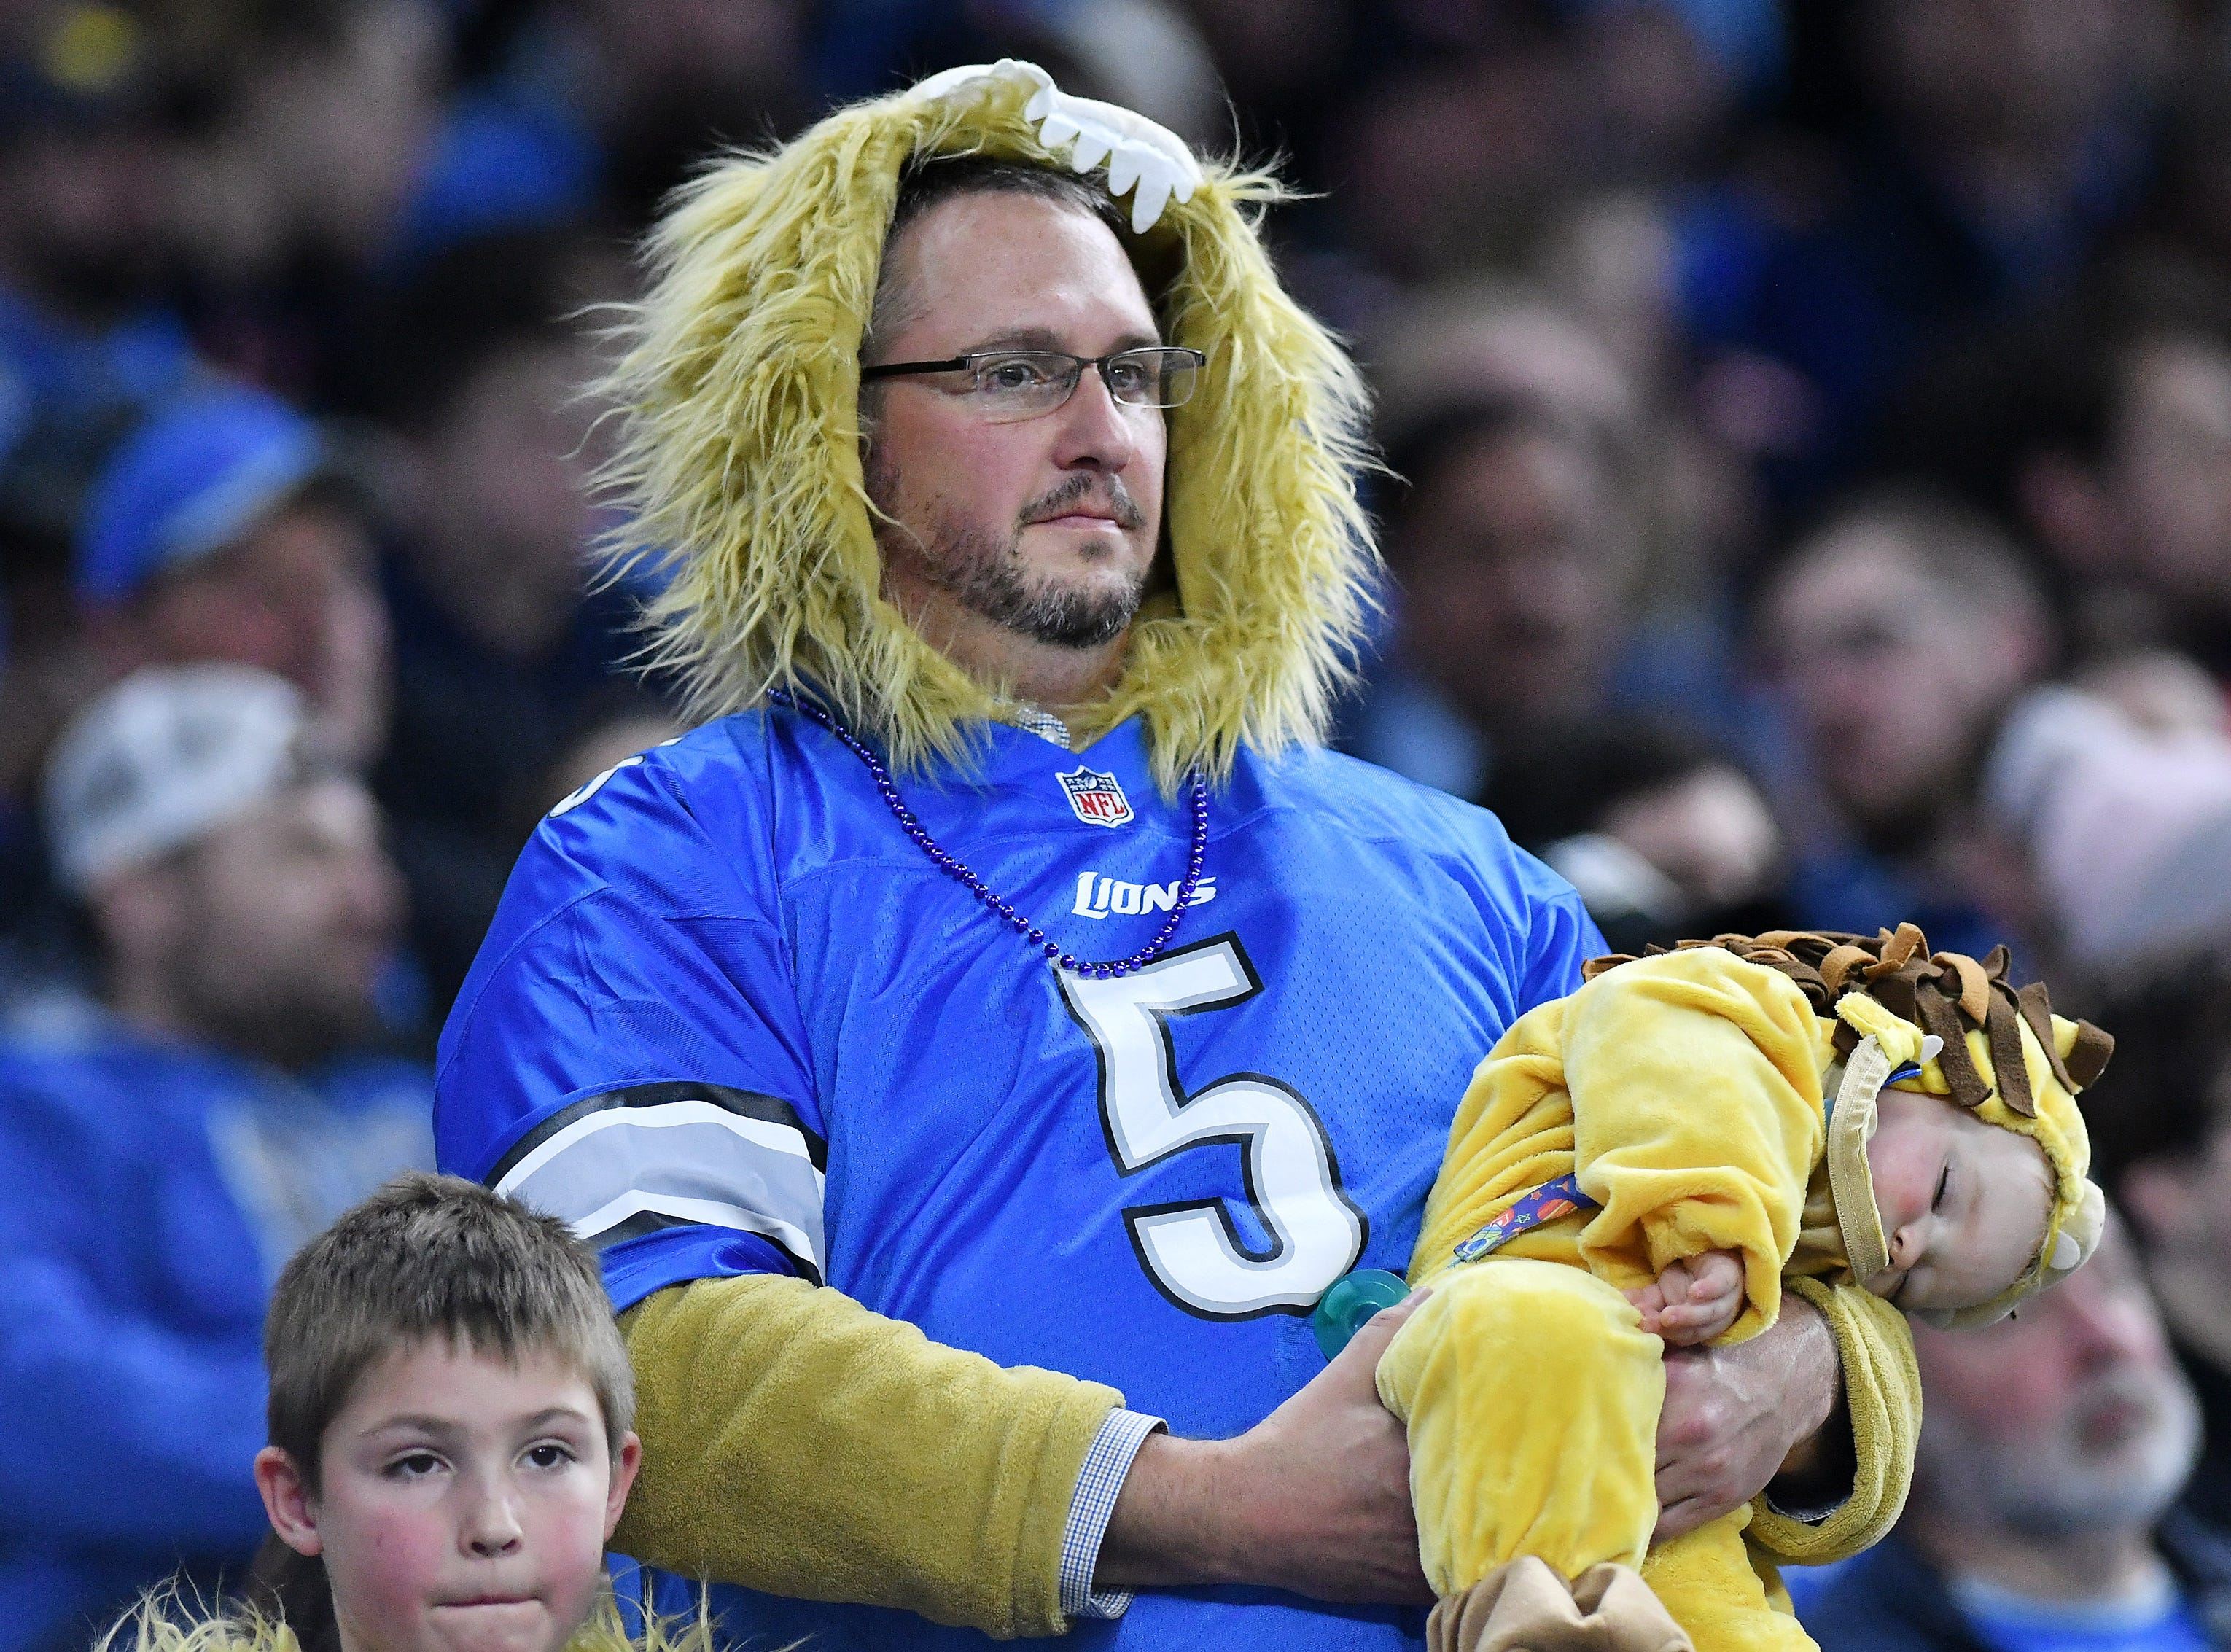 Papa Lions holds one of his sleeping cubs In the second quarter. Detroit Lions vs Chicago Bears on Thanksgiving Day at Ford Field in Detroit on Nov. 22, 2018. (Robin Buckson / Detroit News)